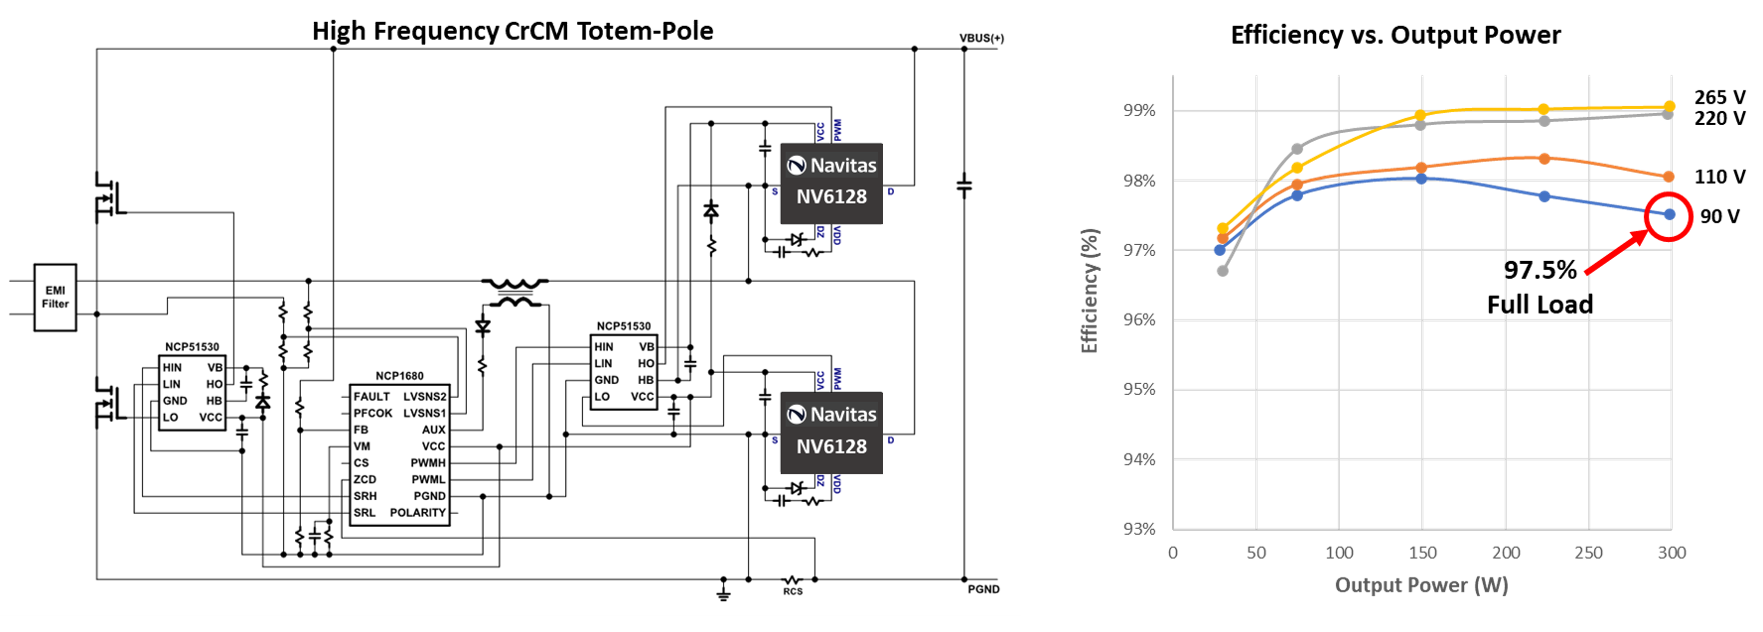 Power Electronics News: GaN Enables Next-Generation High-Frequency Circuits